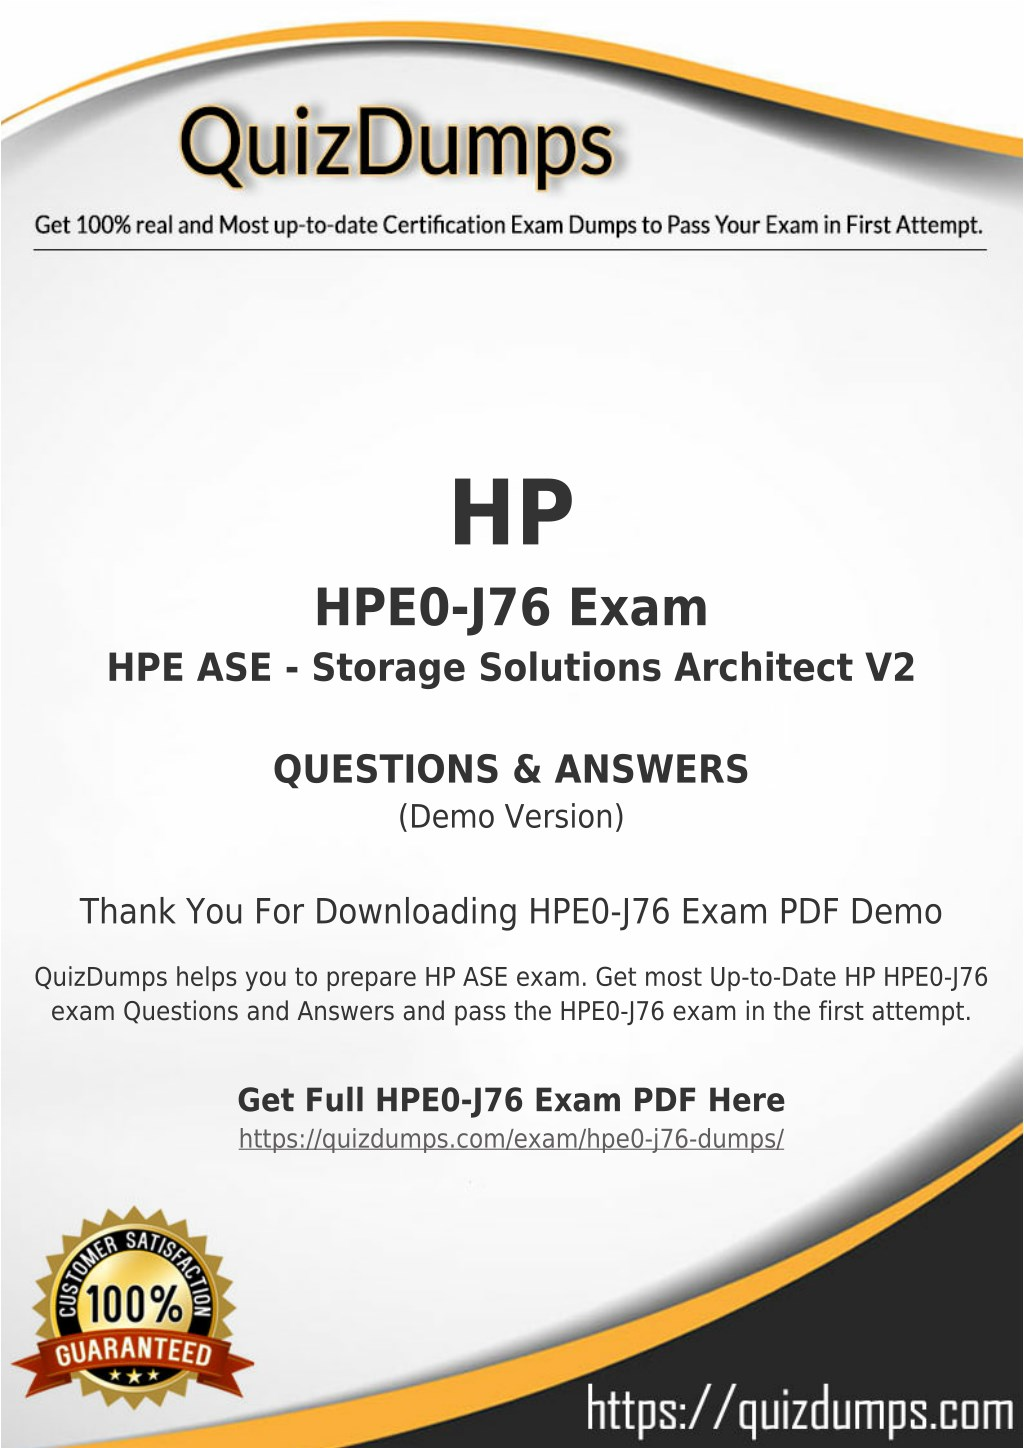 Ppt Hpe0 J76 Exam Dumps Preparation With Hpe0 J76 Dumps Pdf